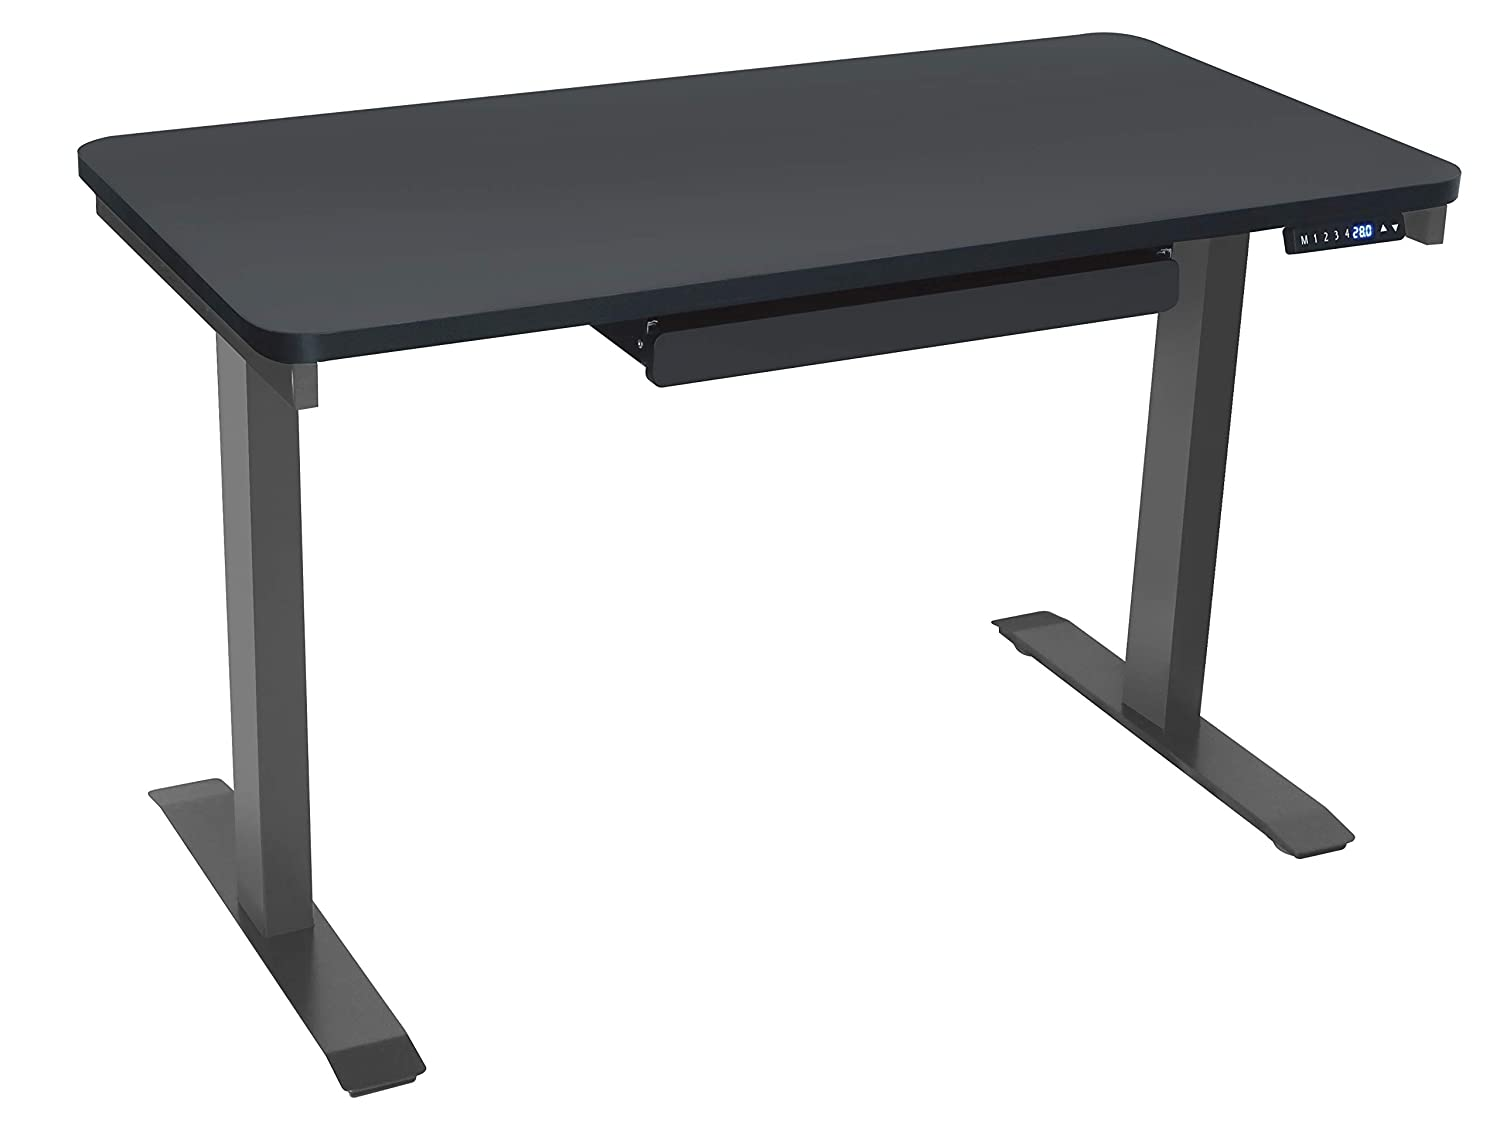 "Motionwise SDG48B Electric Standing Desk, 24""x48 Home Office Series, 28""-48"" with Quickly Program up to 4 pre-Set Height adjustments and USB Charge Port, Black Top with light Grey frame"